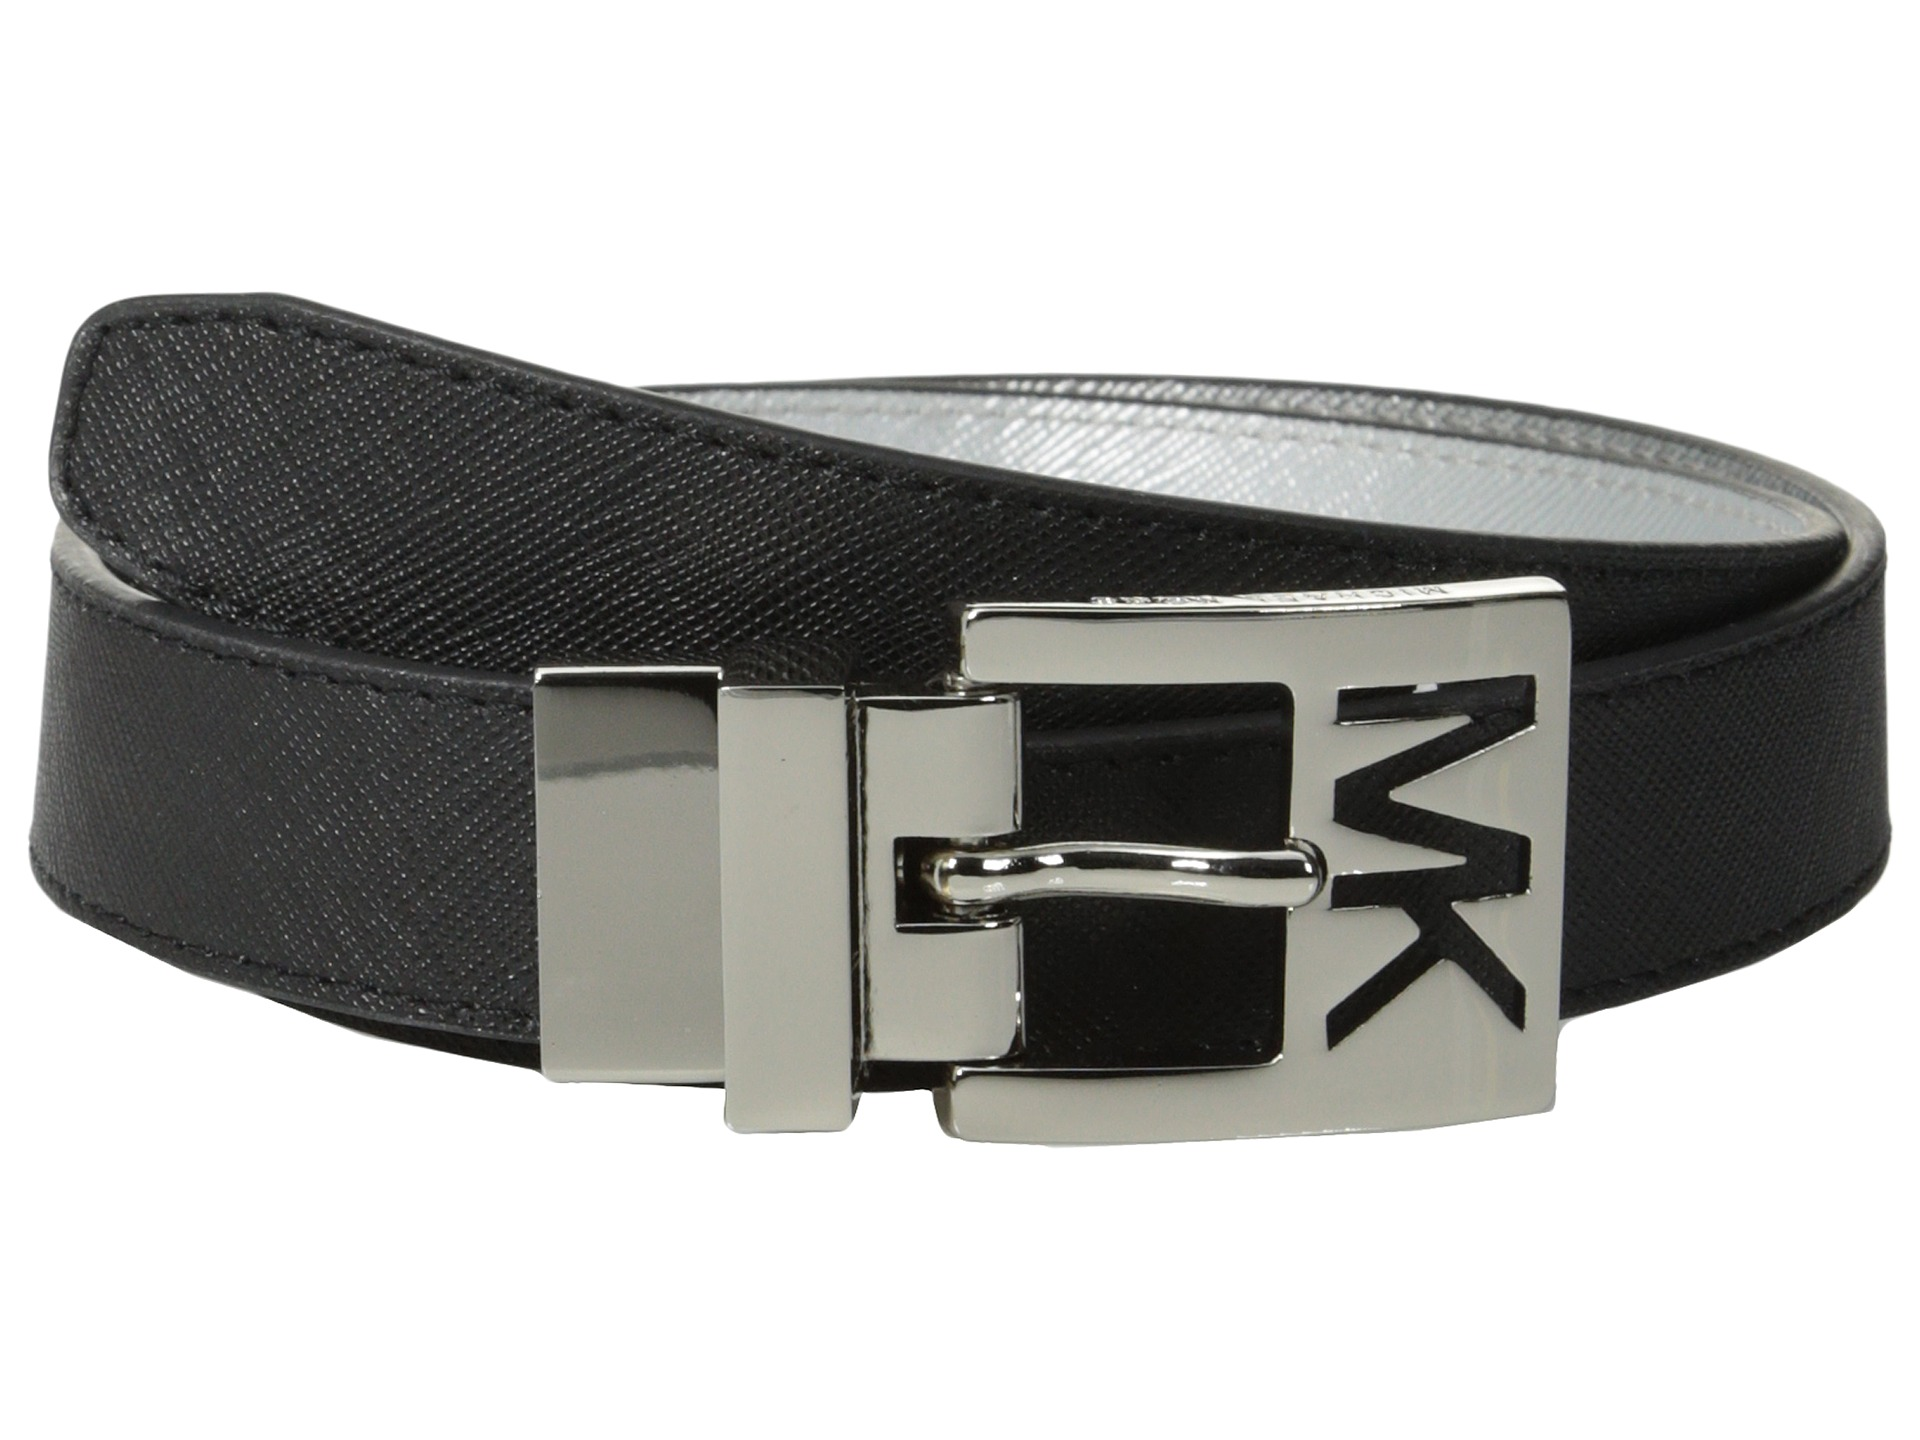 Michael Kors reversible belts have two different colors, one on each side, making them a versatile addition to your ever-changing wardrobe. You can search the vast inventory on eBay to find luxurious, fashionable Michael Kors belts. After all, the right belt can really tie your entire look together.